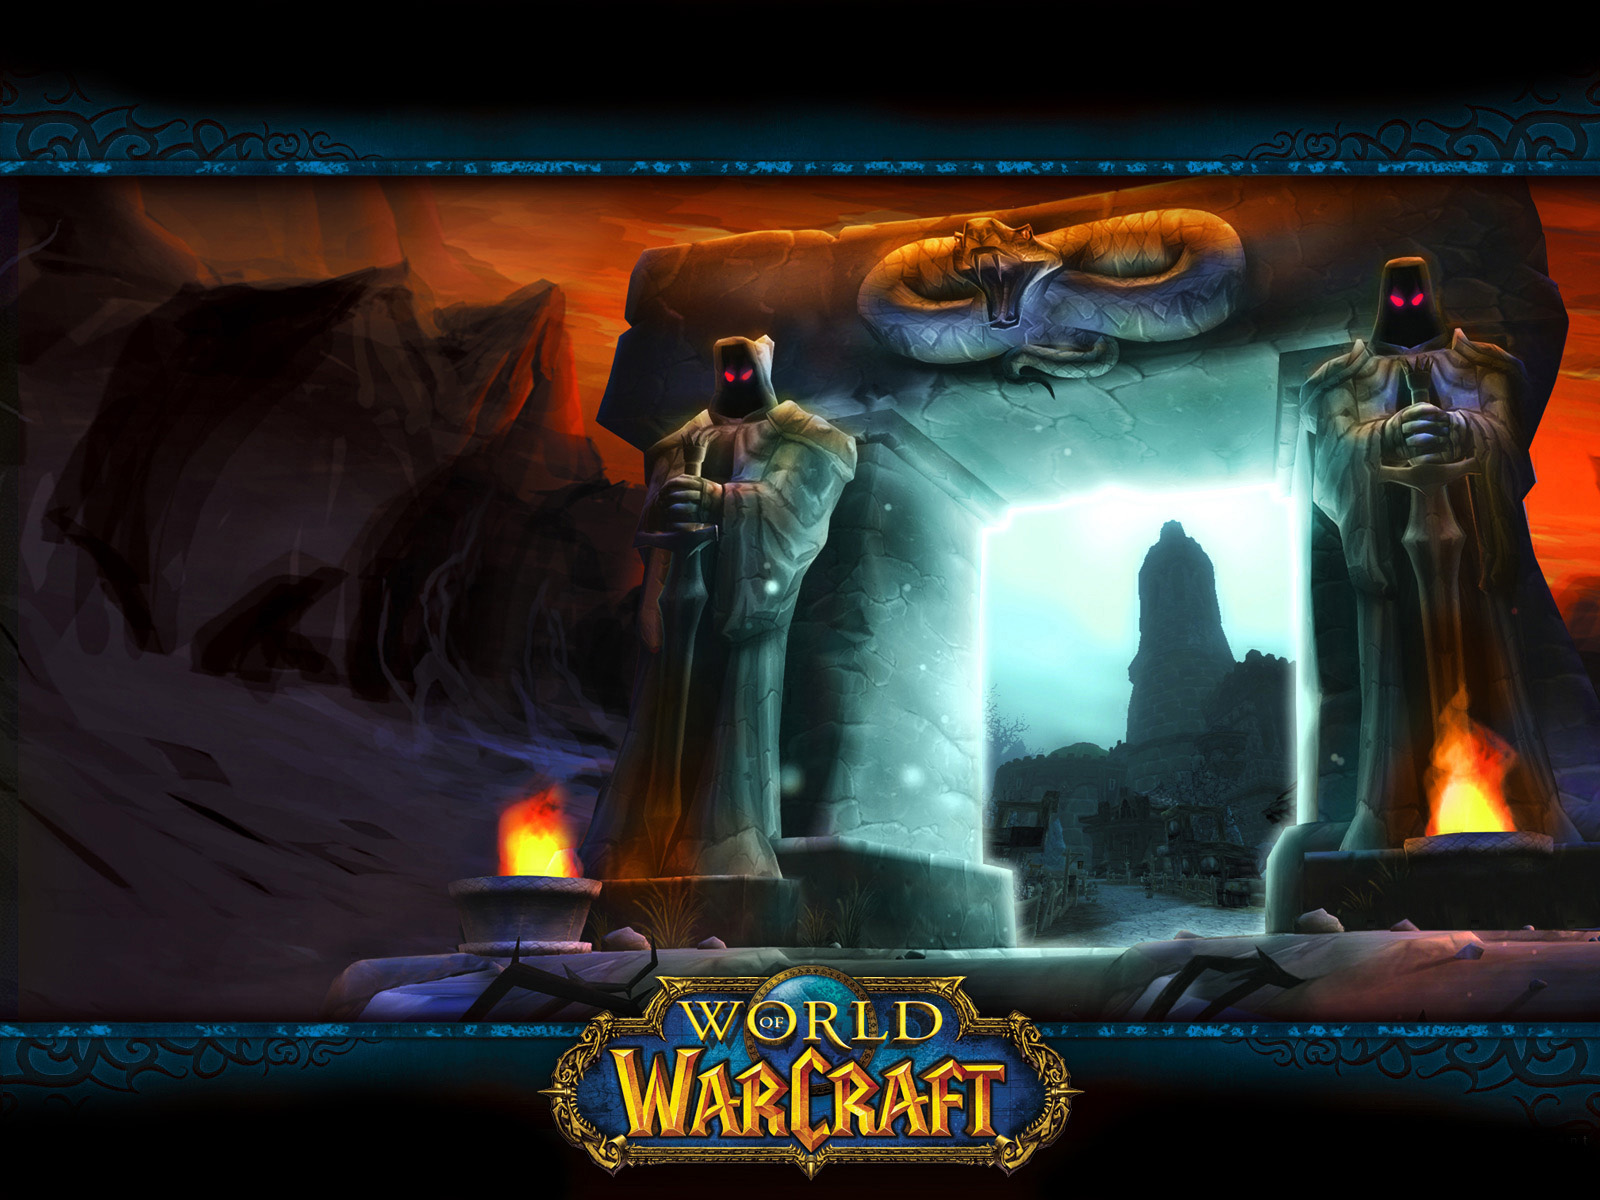 A href=https://staticpxfeedcom/world-of-warcraft-cataclysm-game-wallpapers-9684 img src=https